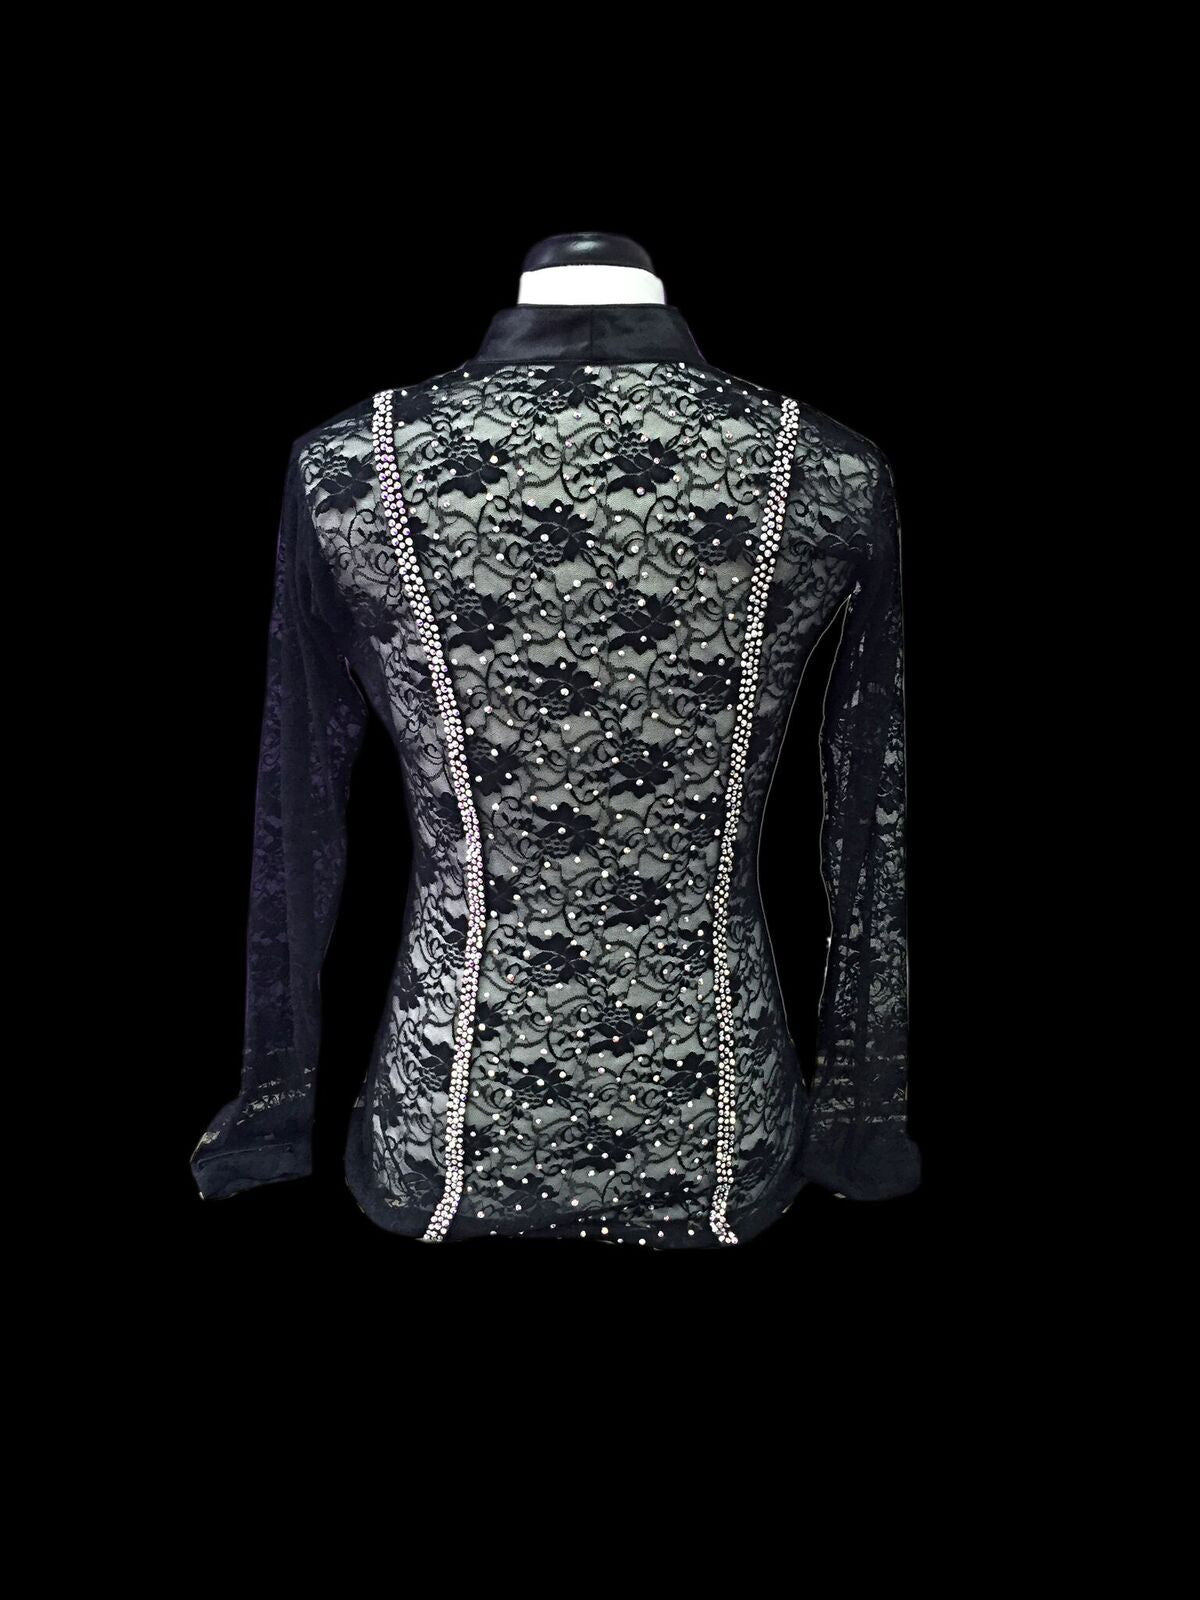 Lace Latin Shirt with Swarovski Crystal SOLD